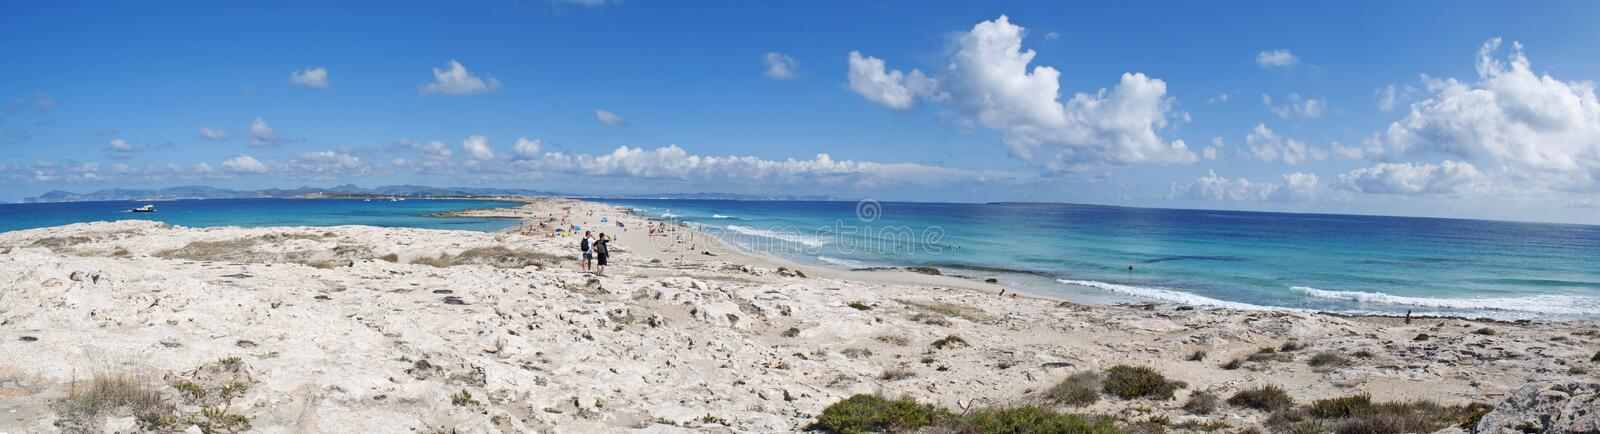 Formentera, Balearic Islands, Spain, Europe royalty free stock photography